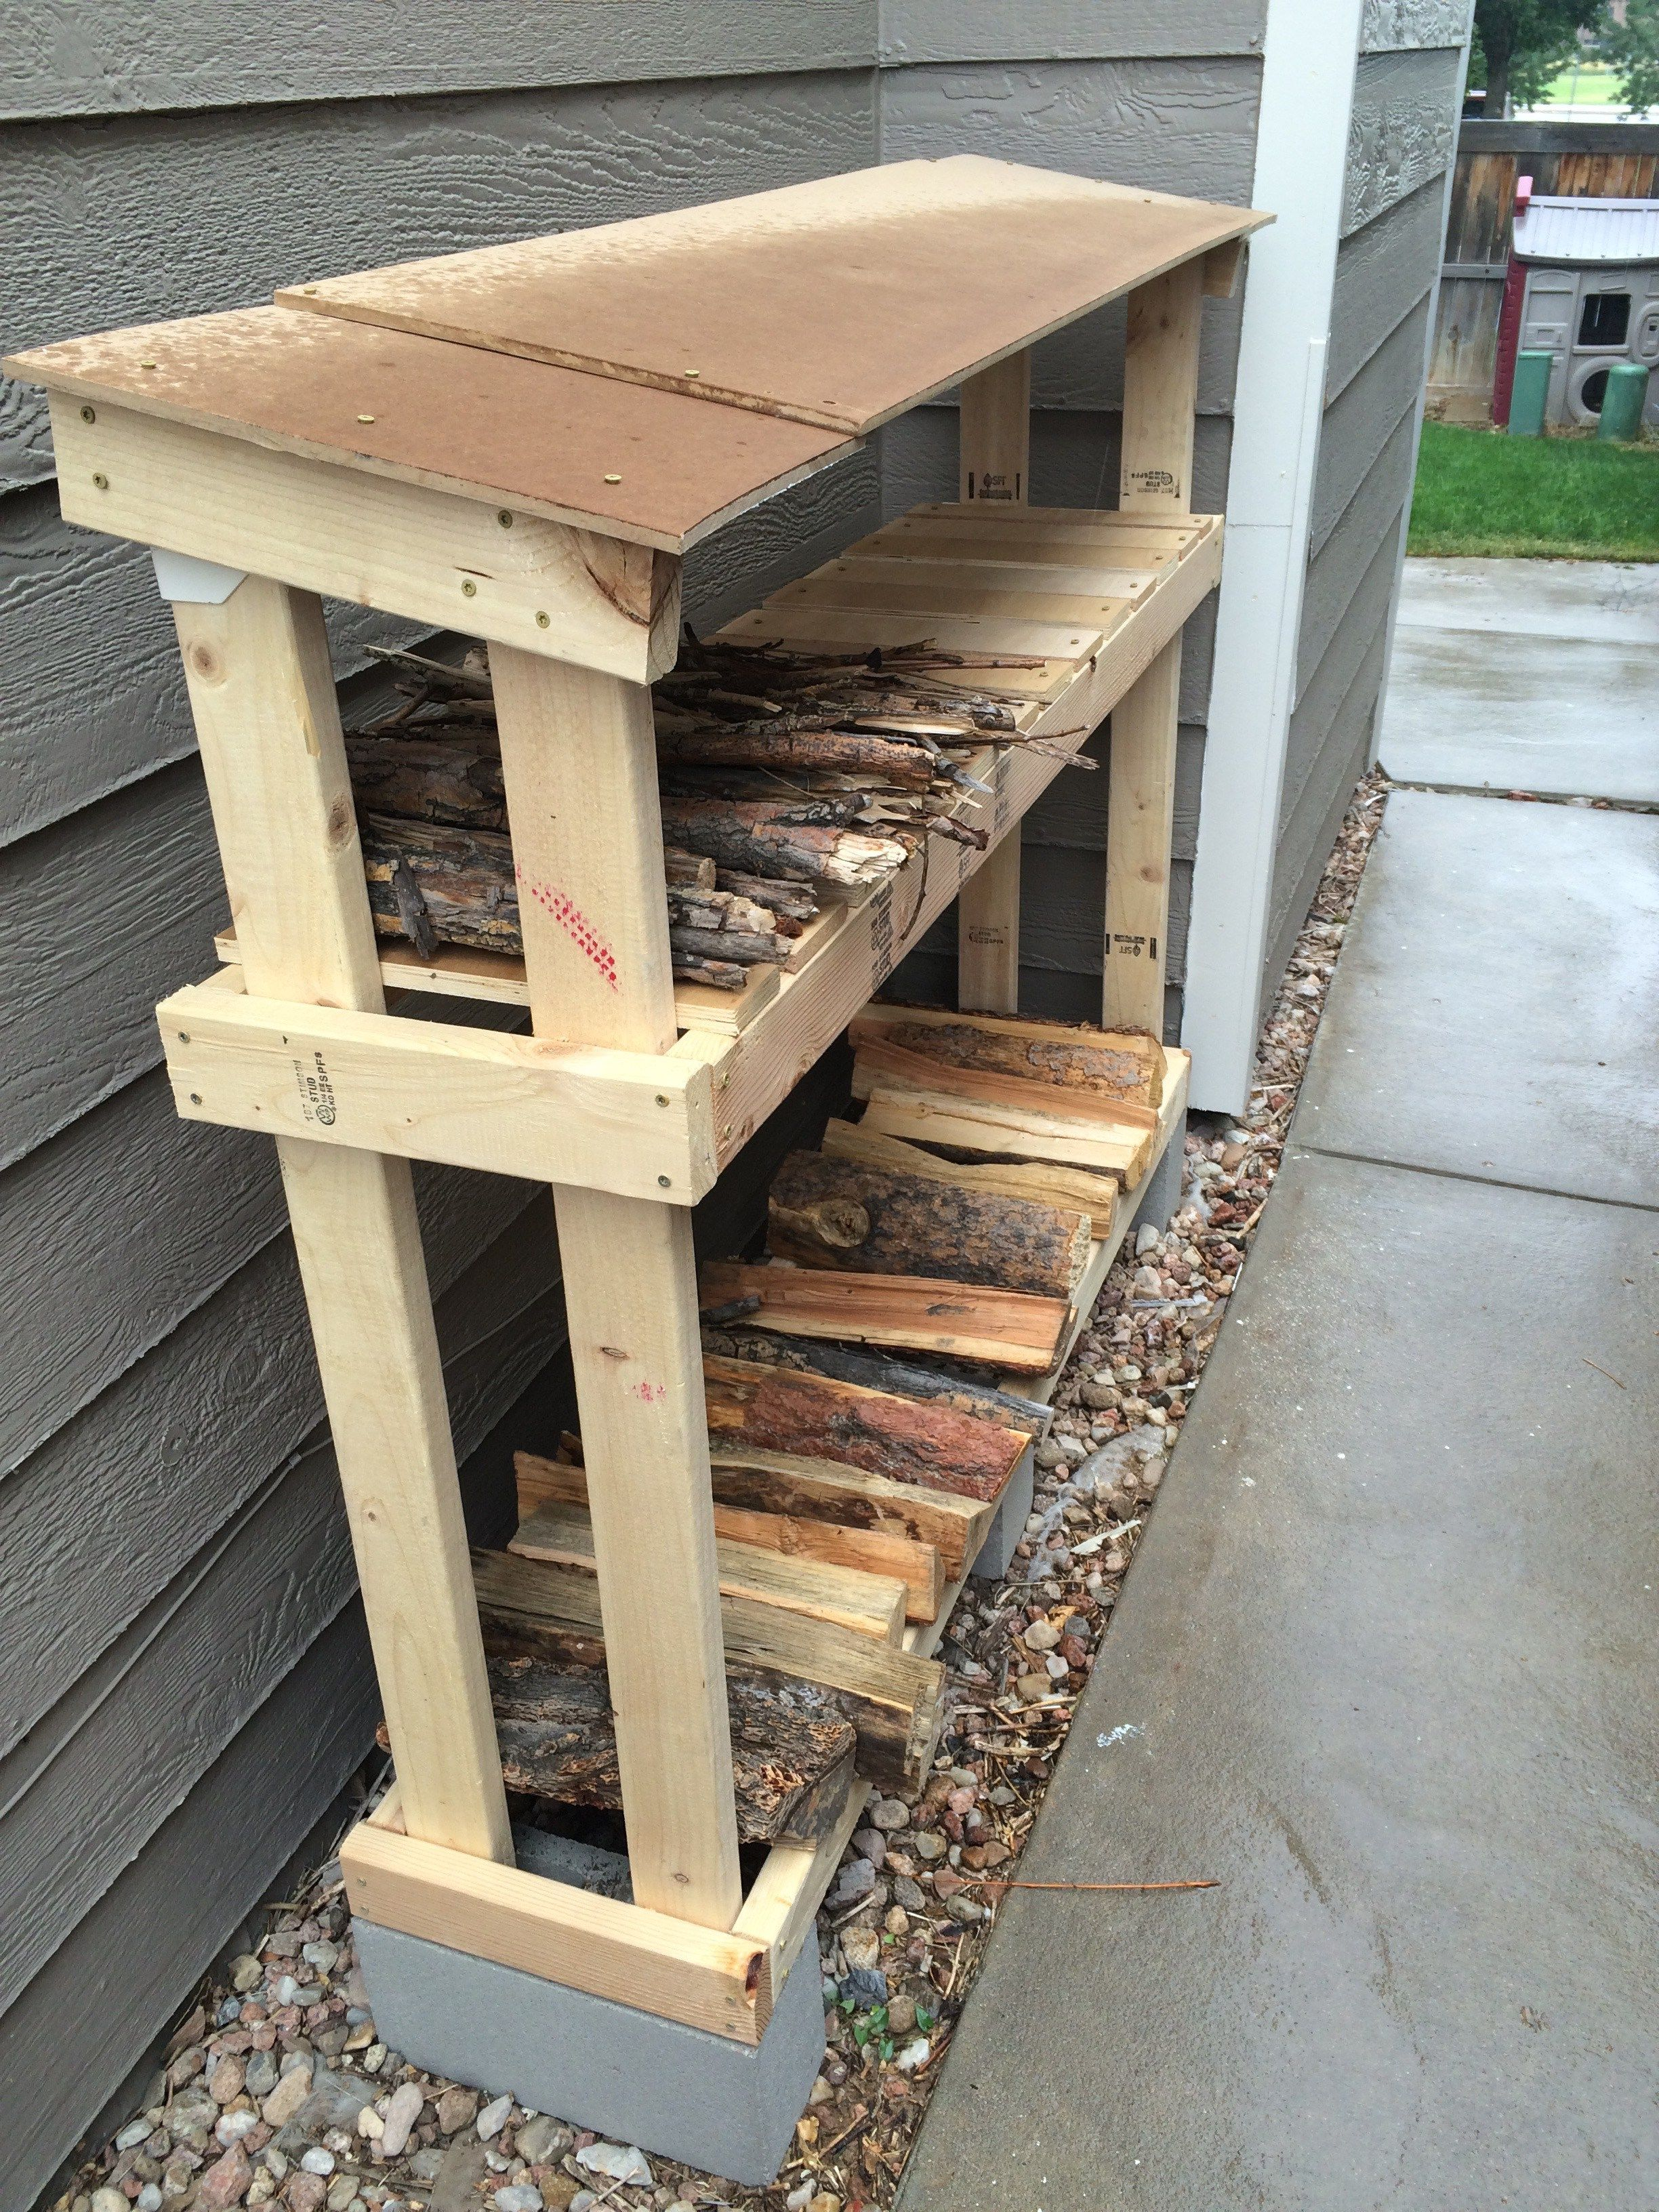 Schuppen Aus Paletten Bauen Firewood Storage That Is Easy To Make And Keeps Wood Dry And Out